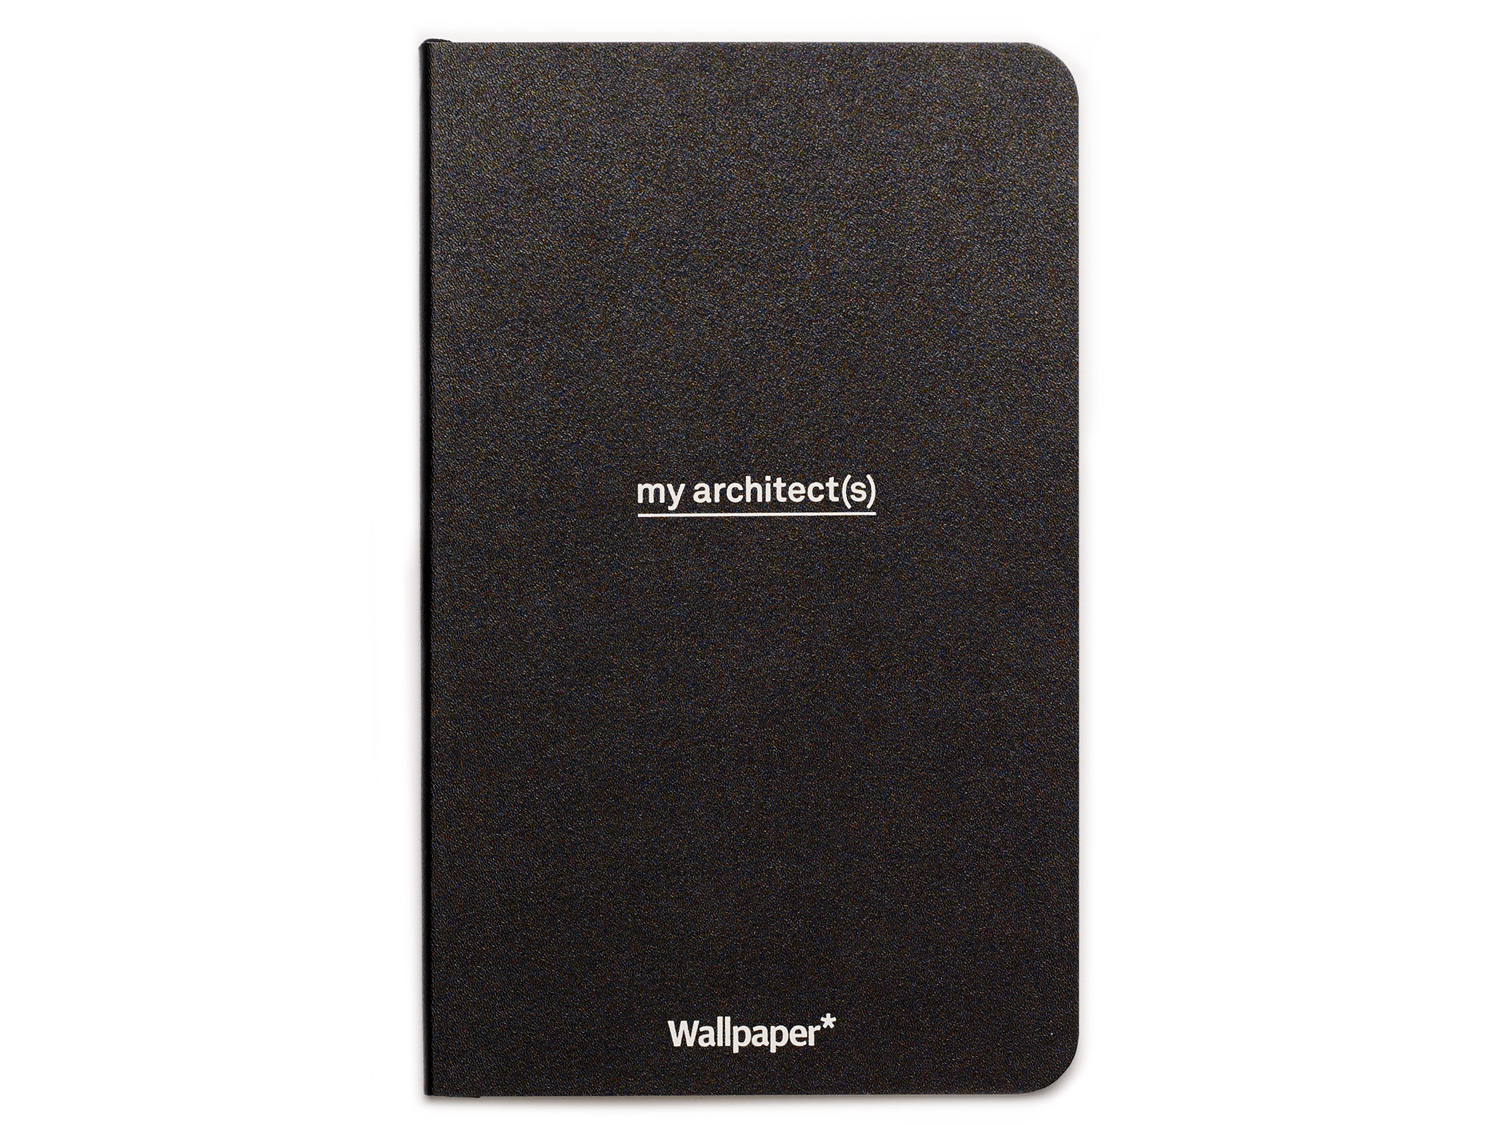 18/31 – My architect(s) at Wallpaper*